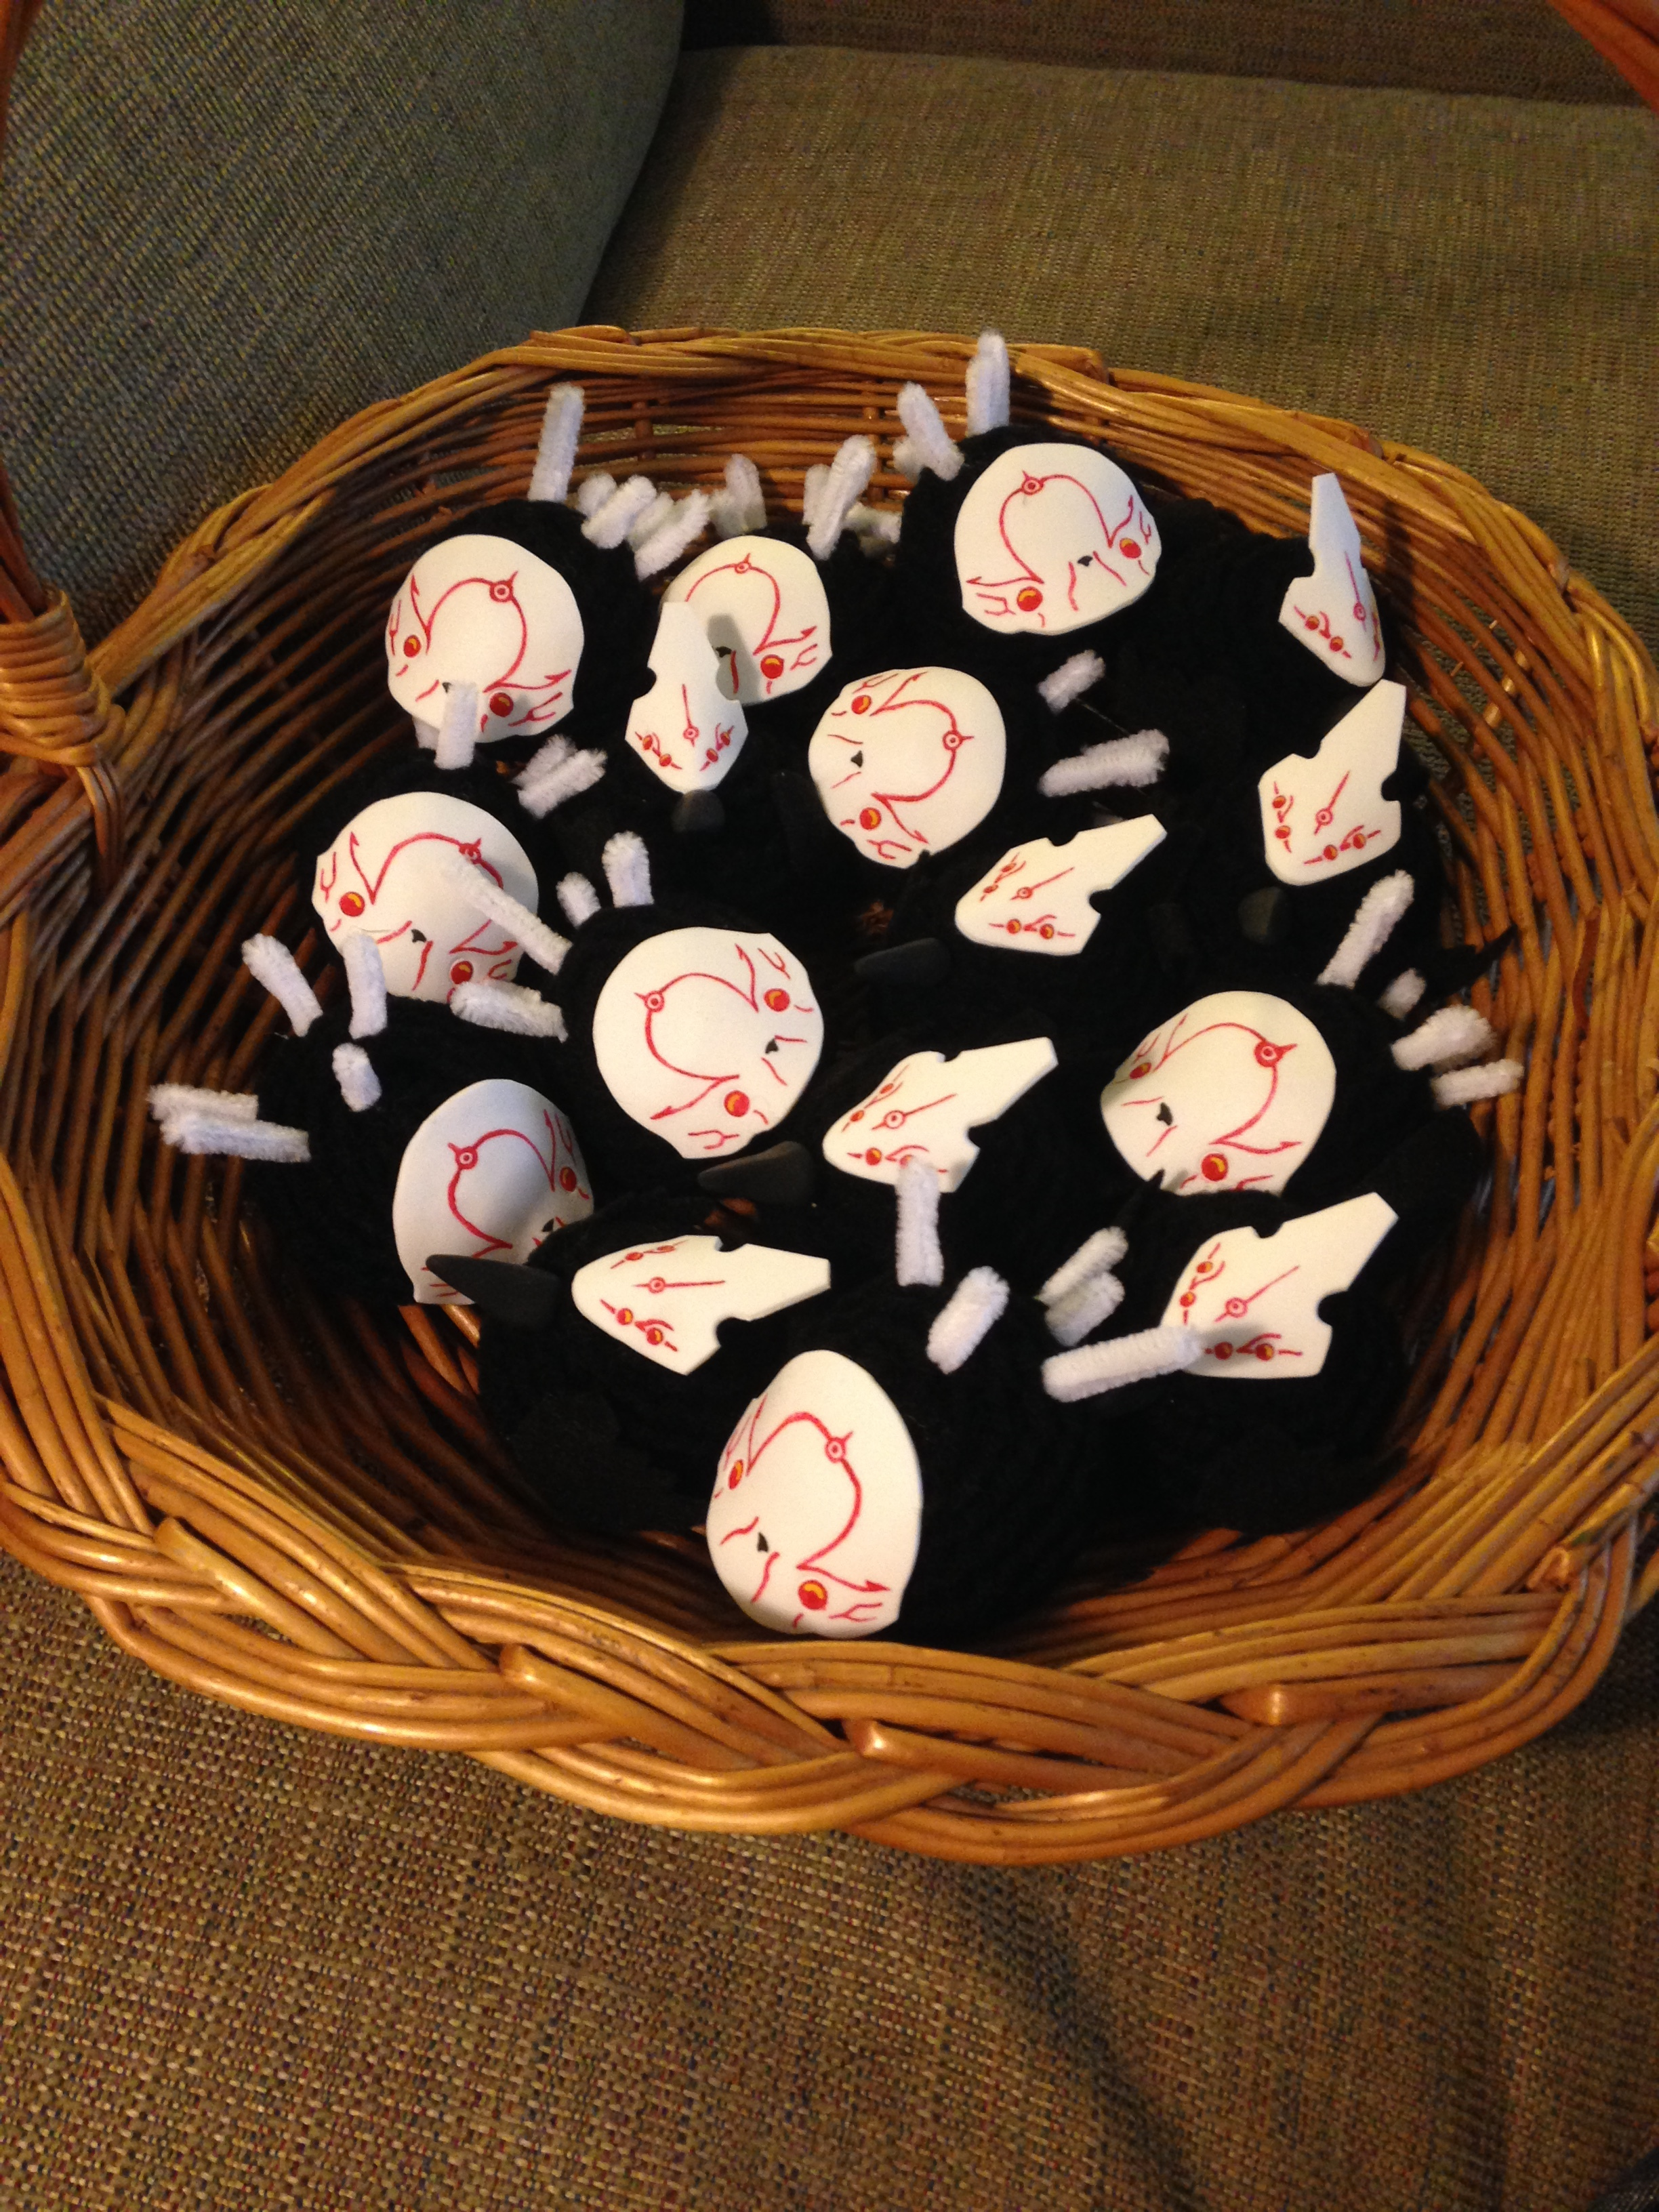 In anticipation of the panel, I made a basket full of Grimm. RAWR!